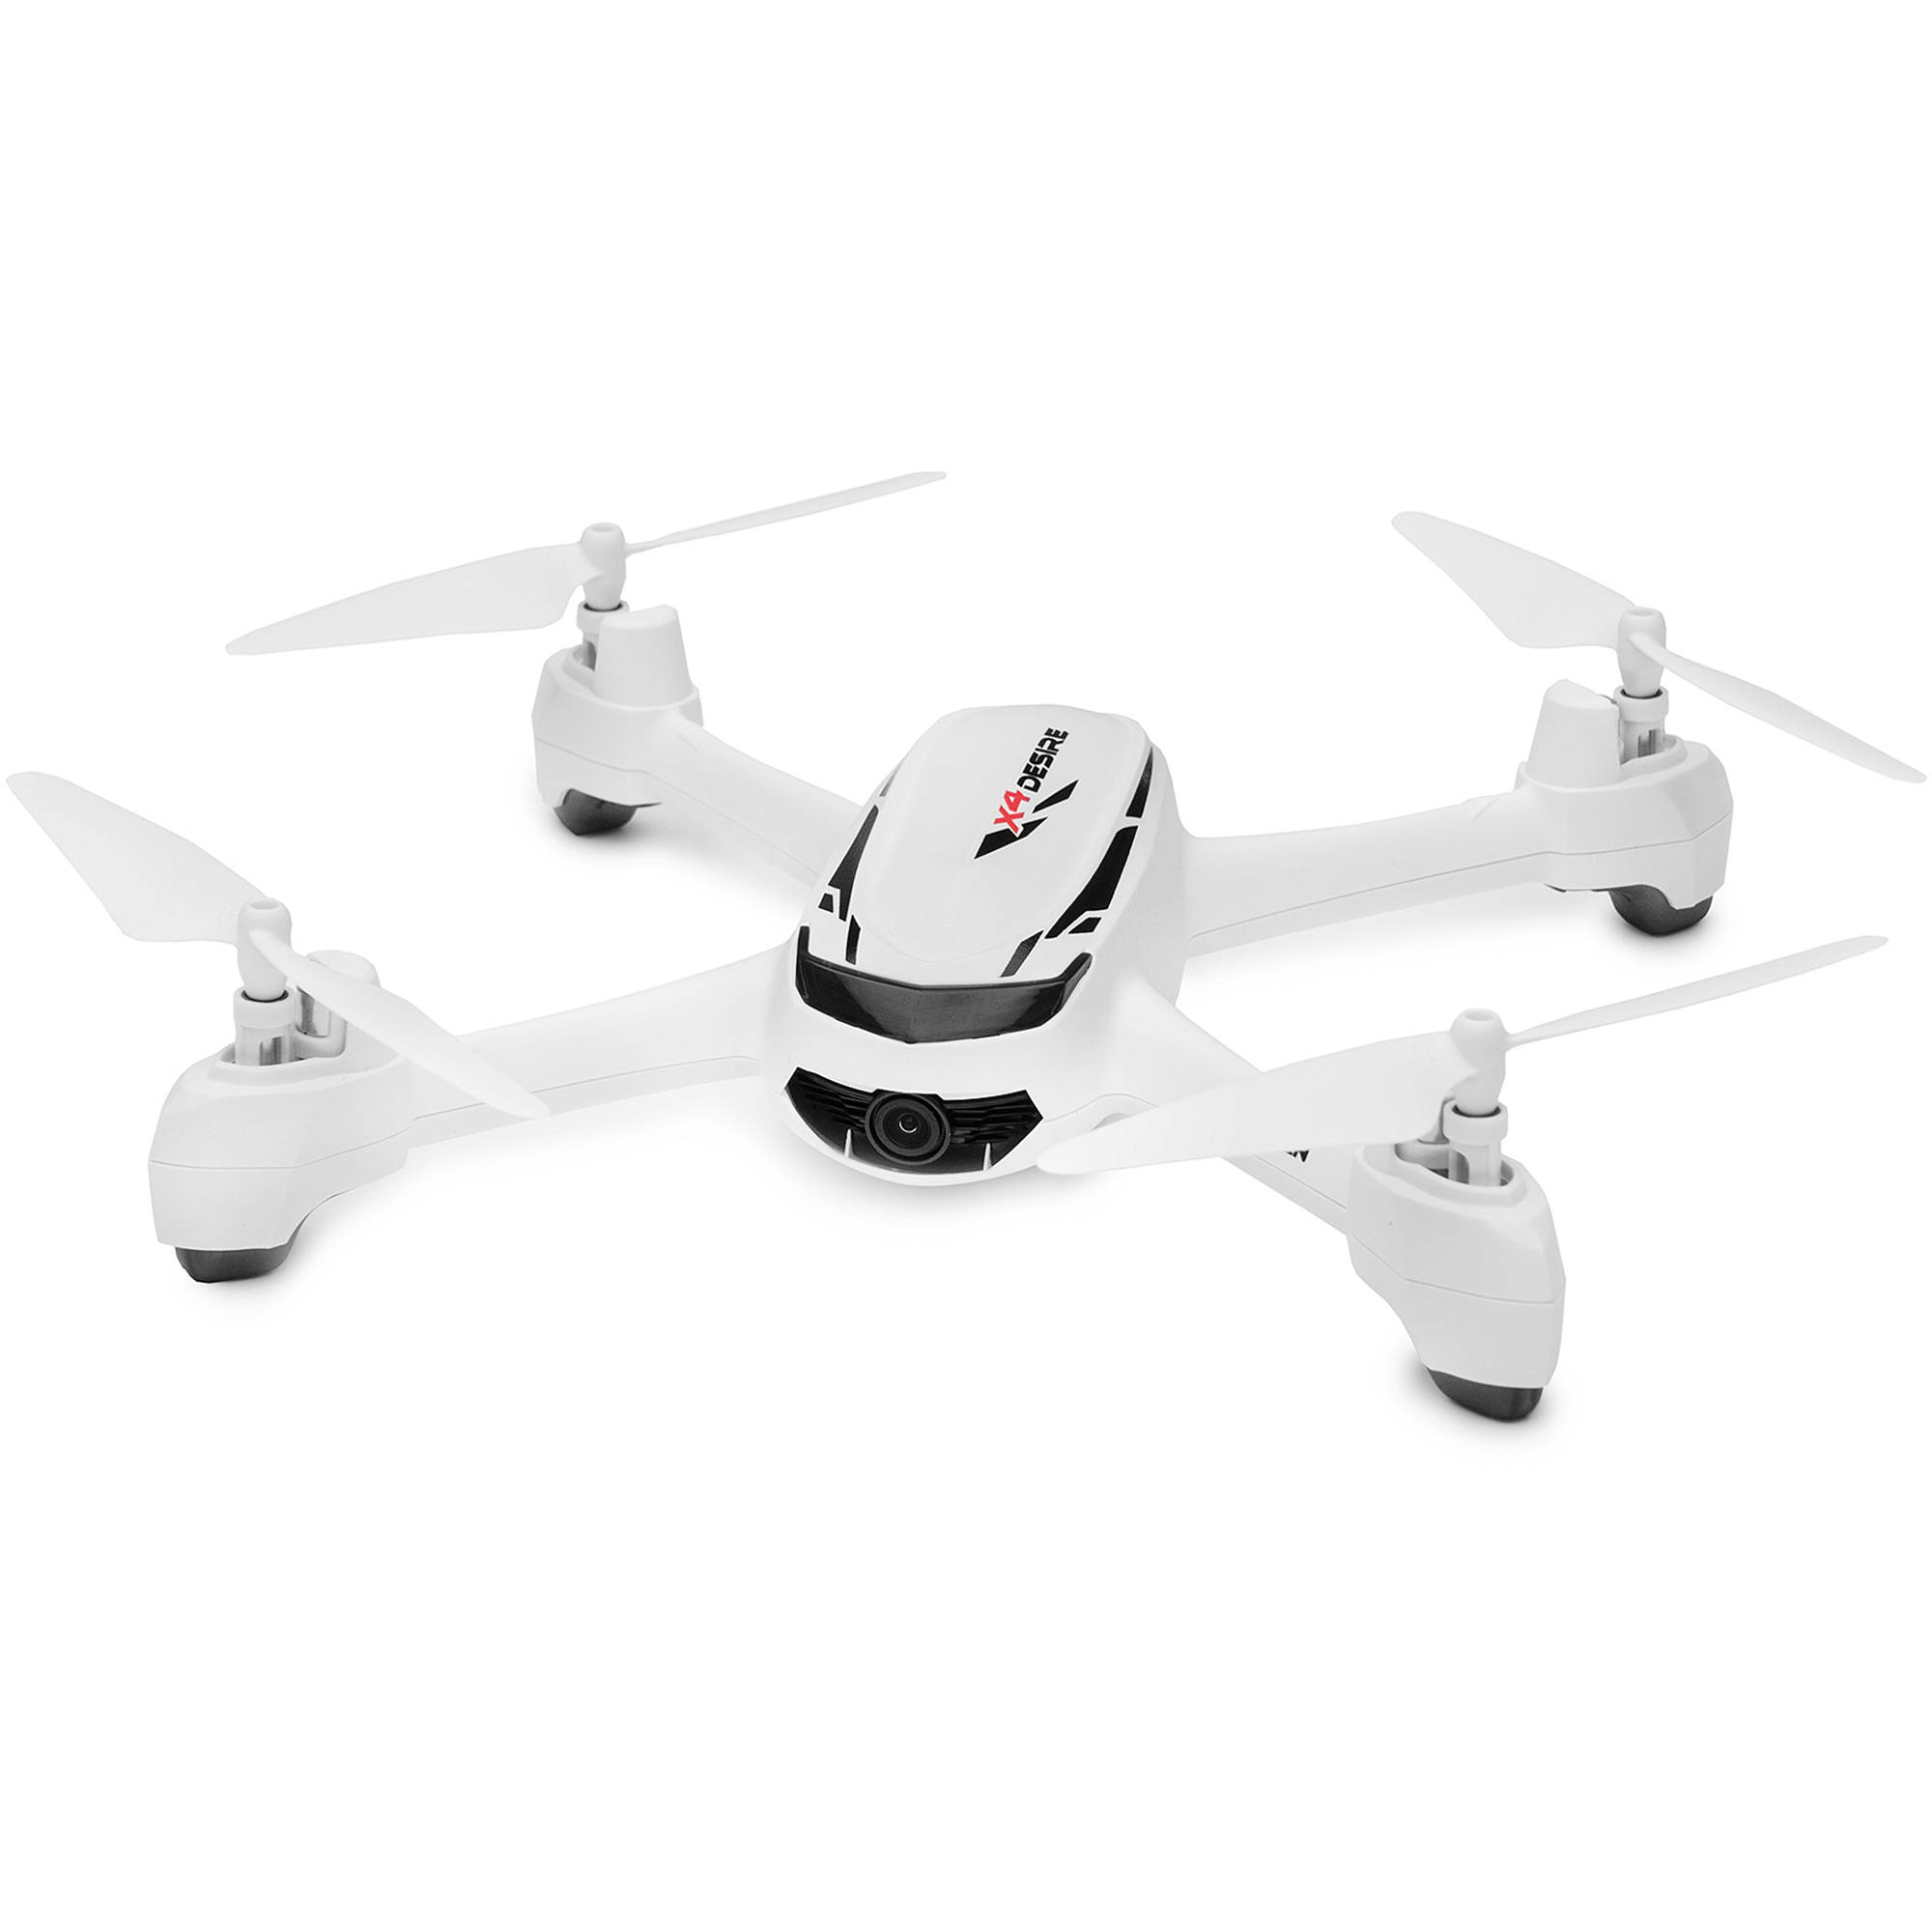 HUBSAN H502S X4 Desire - The Best Drones for Kids - For Fun and Safe Flying!